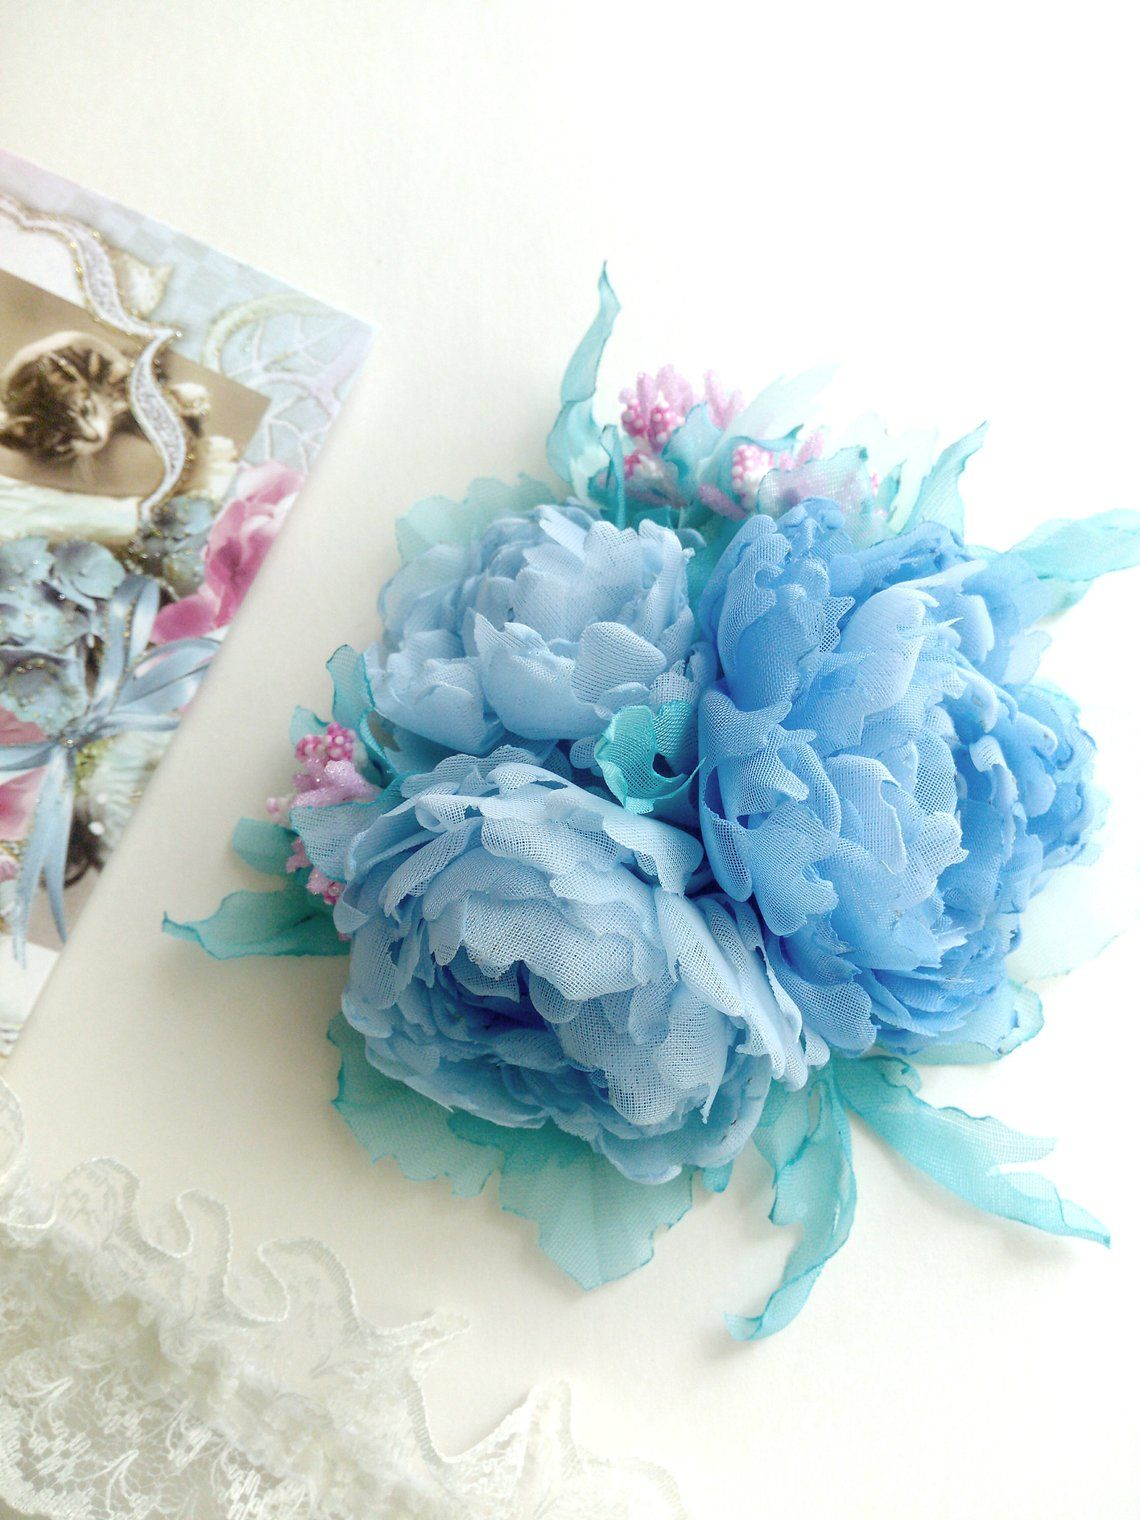 Items similar to Flower hair clip, fabric flower brooch, light blue chiffon flowers vintage, blue peonies fabric, boho chiffon flower, light blue brooch on Etsy #bluepeonies